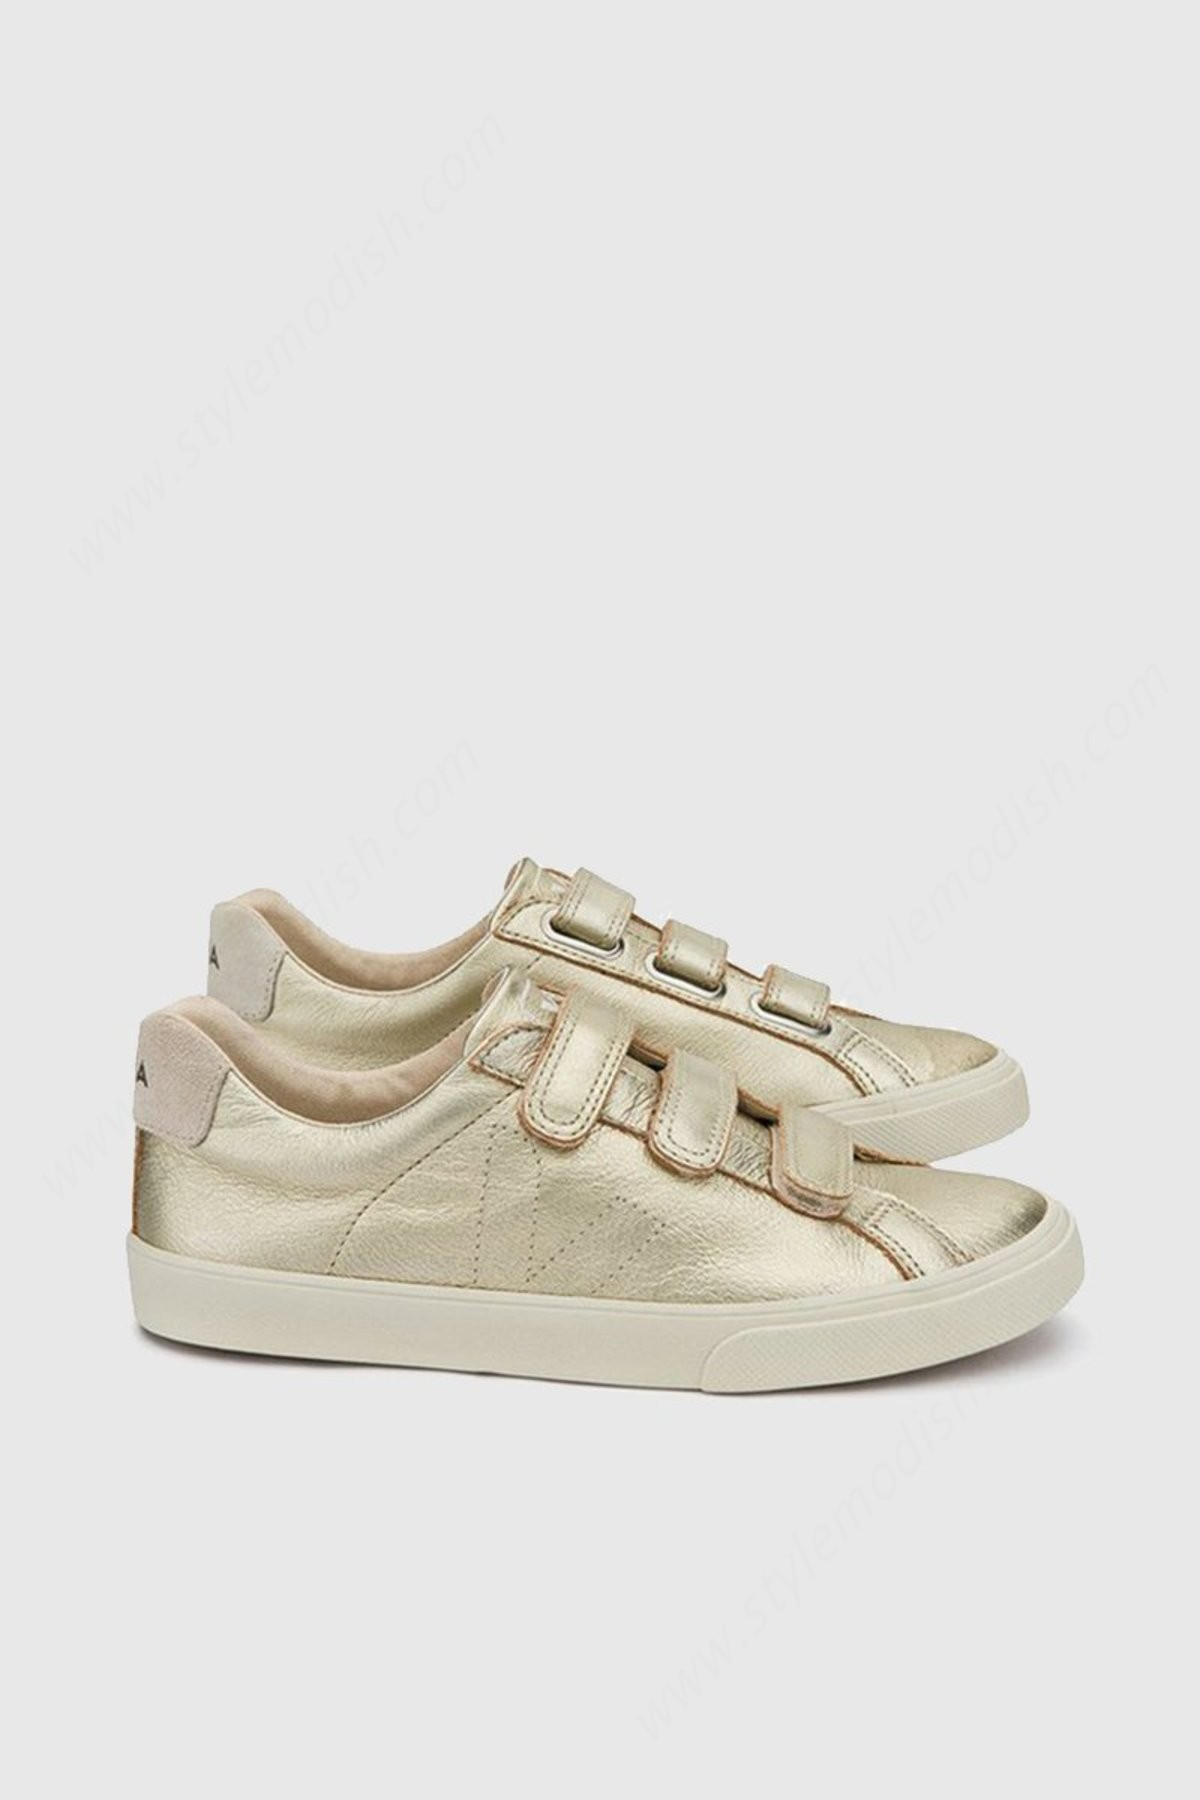 Womens's Veja Esplar Lock Leather - Gold Trainers - Womens's Veja Esplar Lock Leather - Gold Trainers